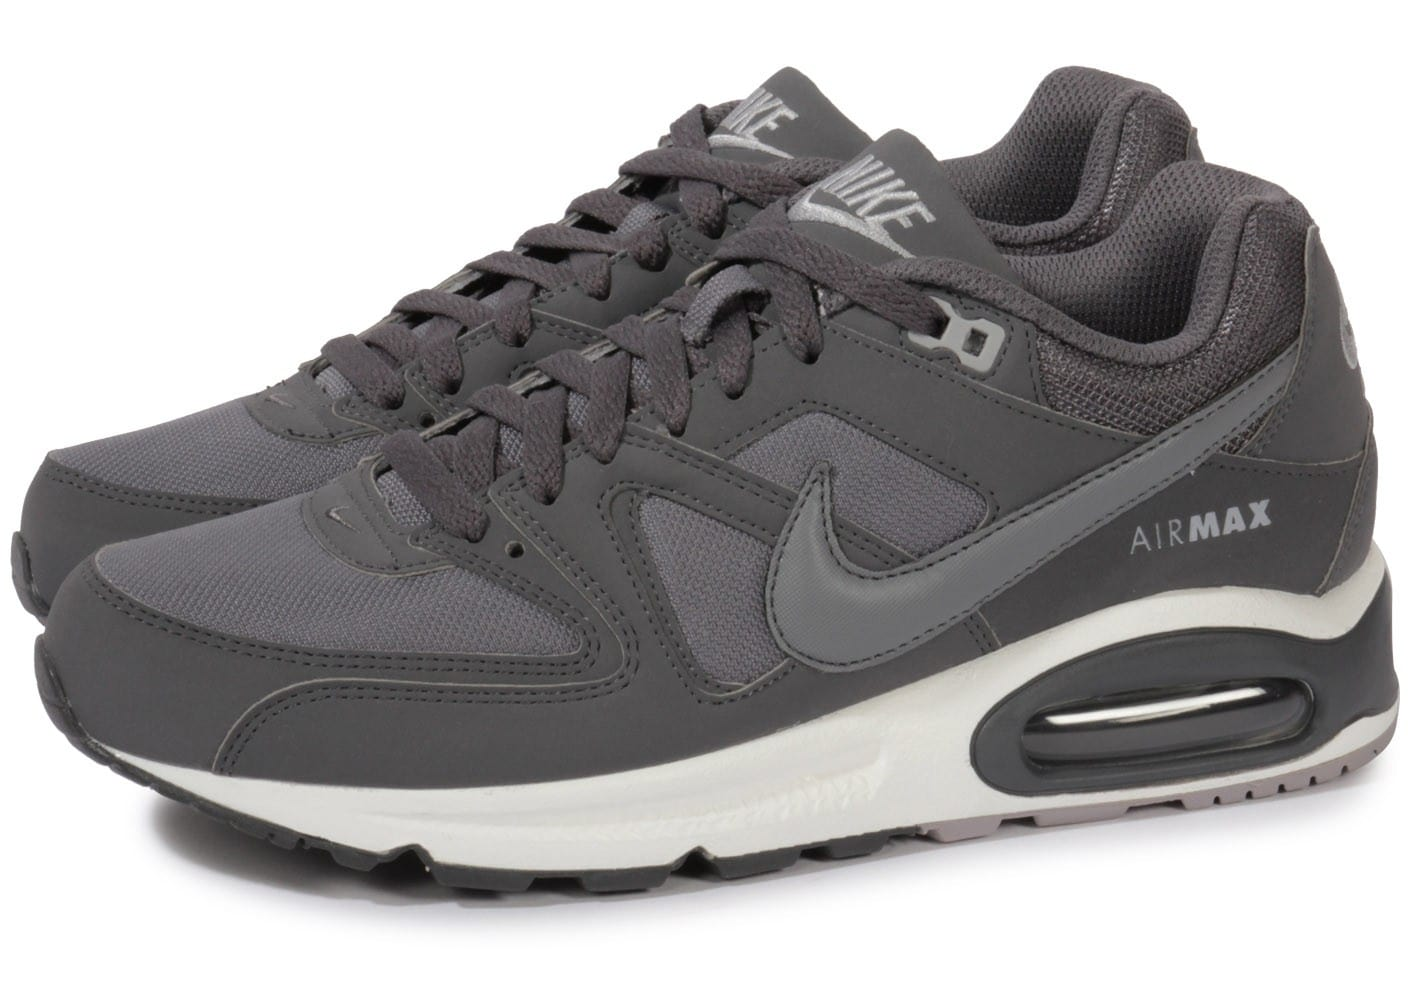 nike air max command grise chaussures baskets homme chausport. Black Bedroom Furniture Sets. Home Design Ideas